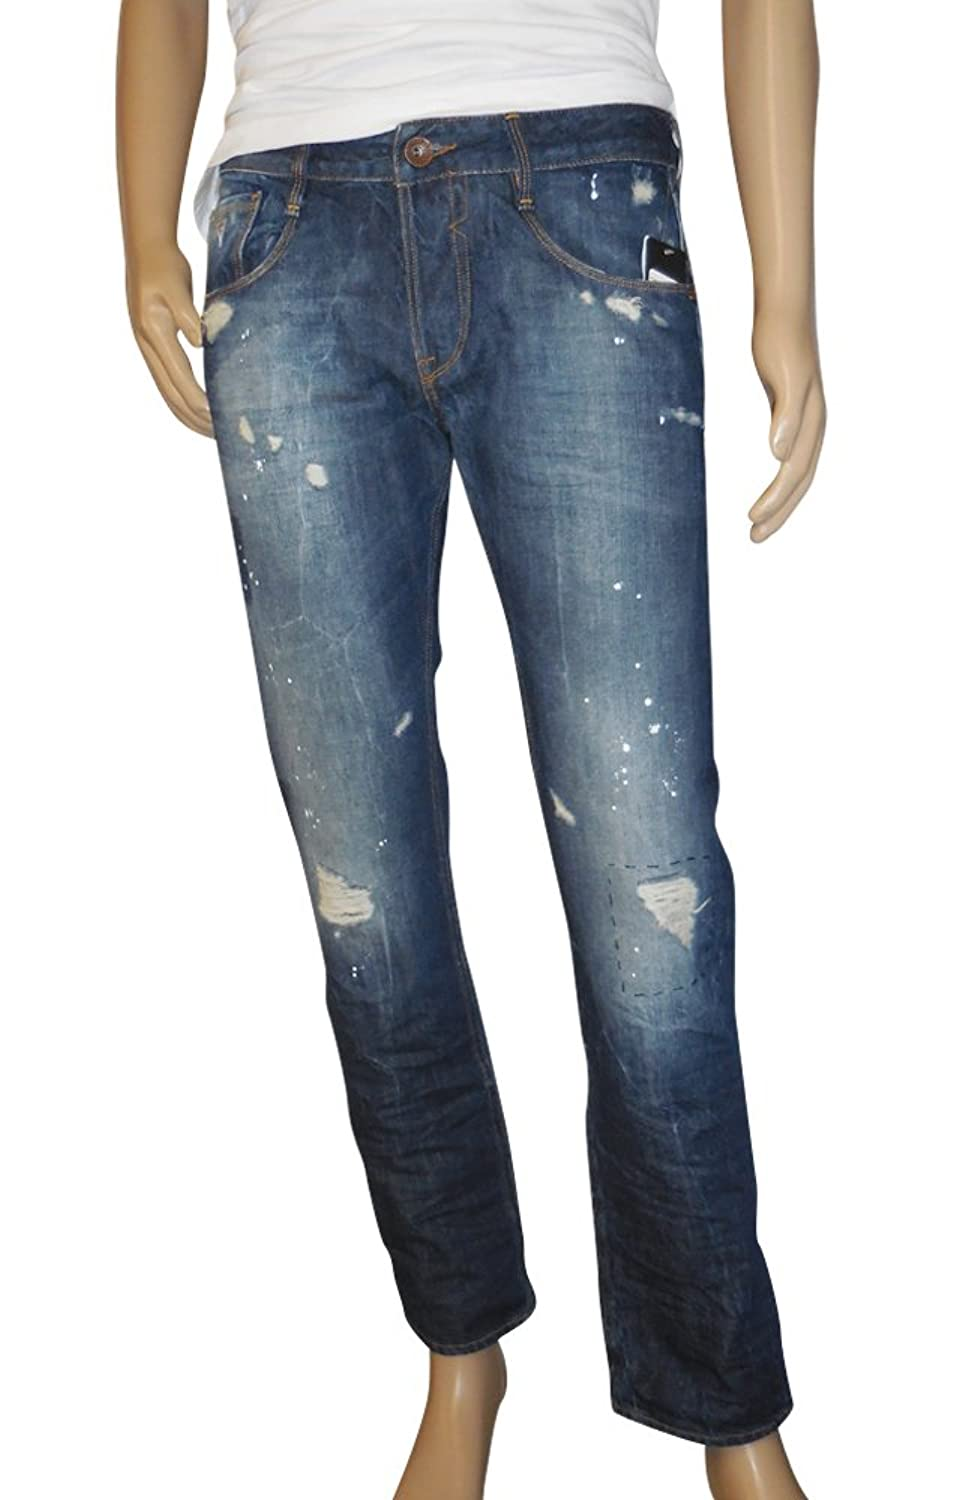 Guess Men's Slim Staight Fit Denim Jeans in Mosquite Wash